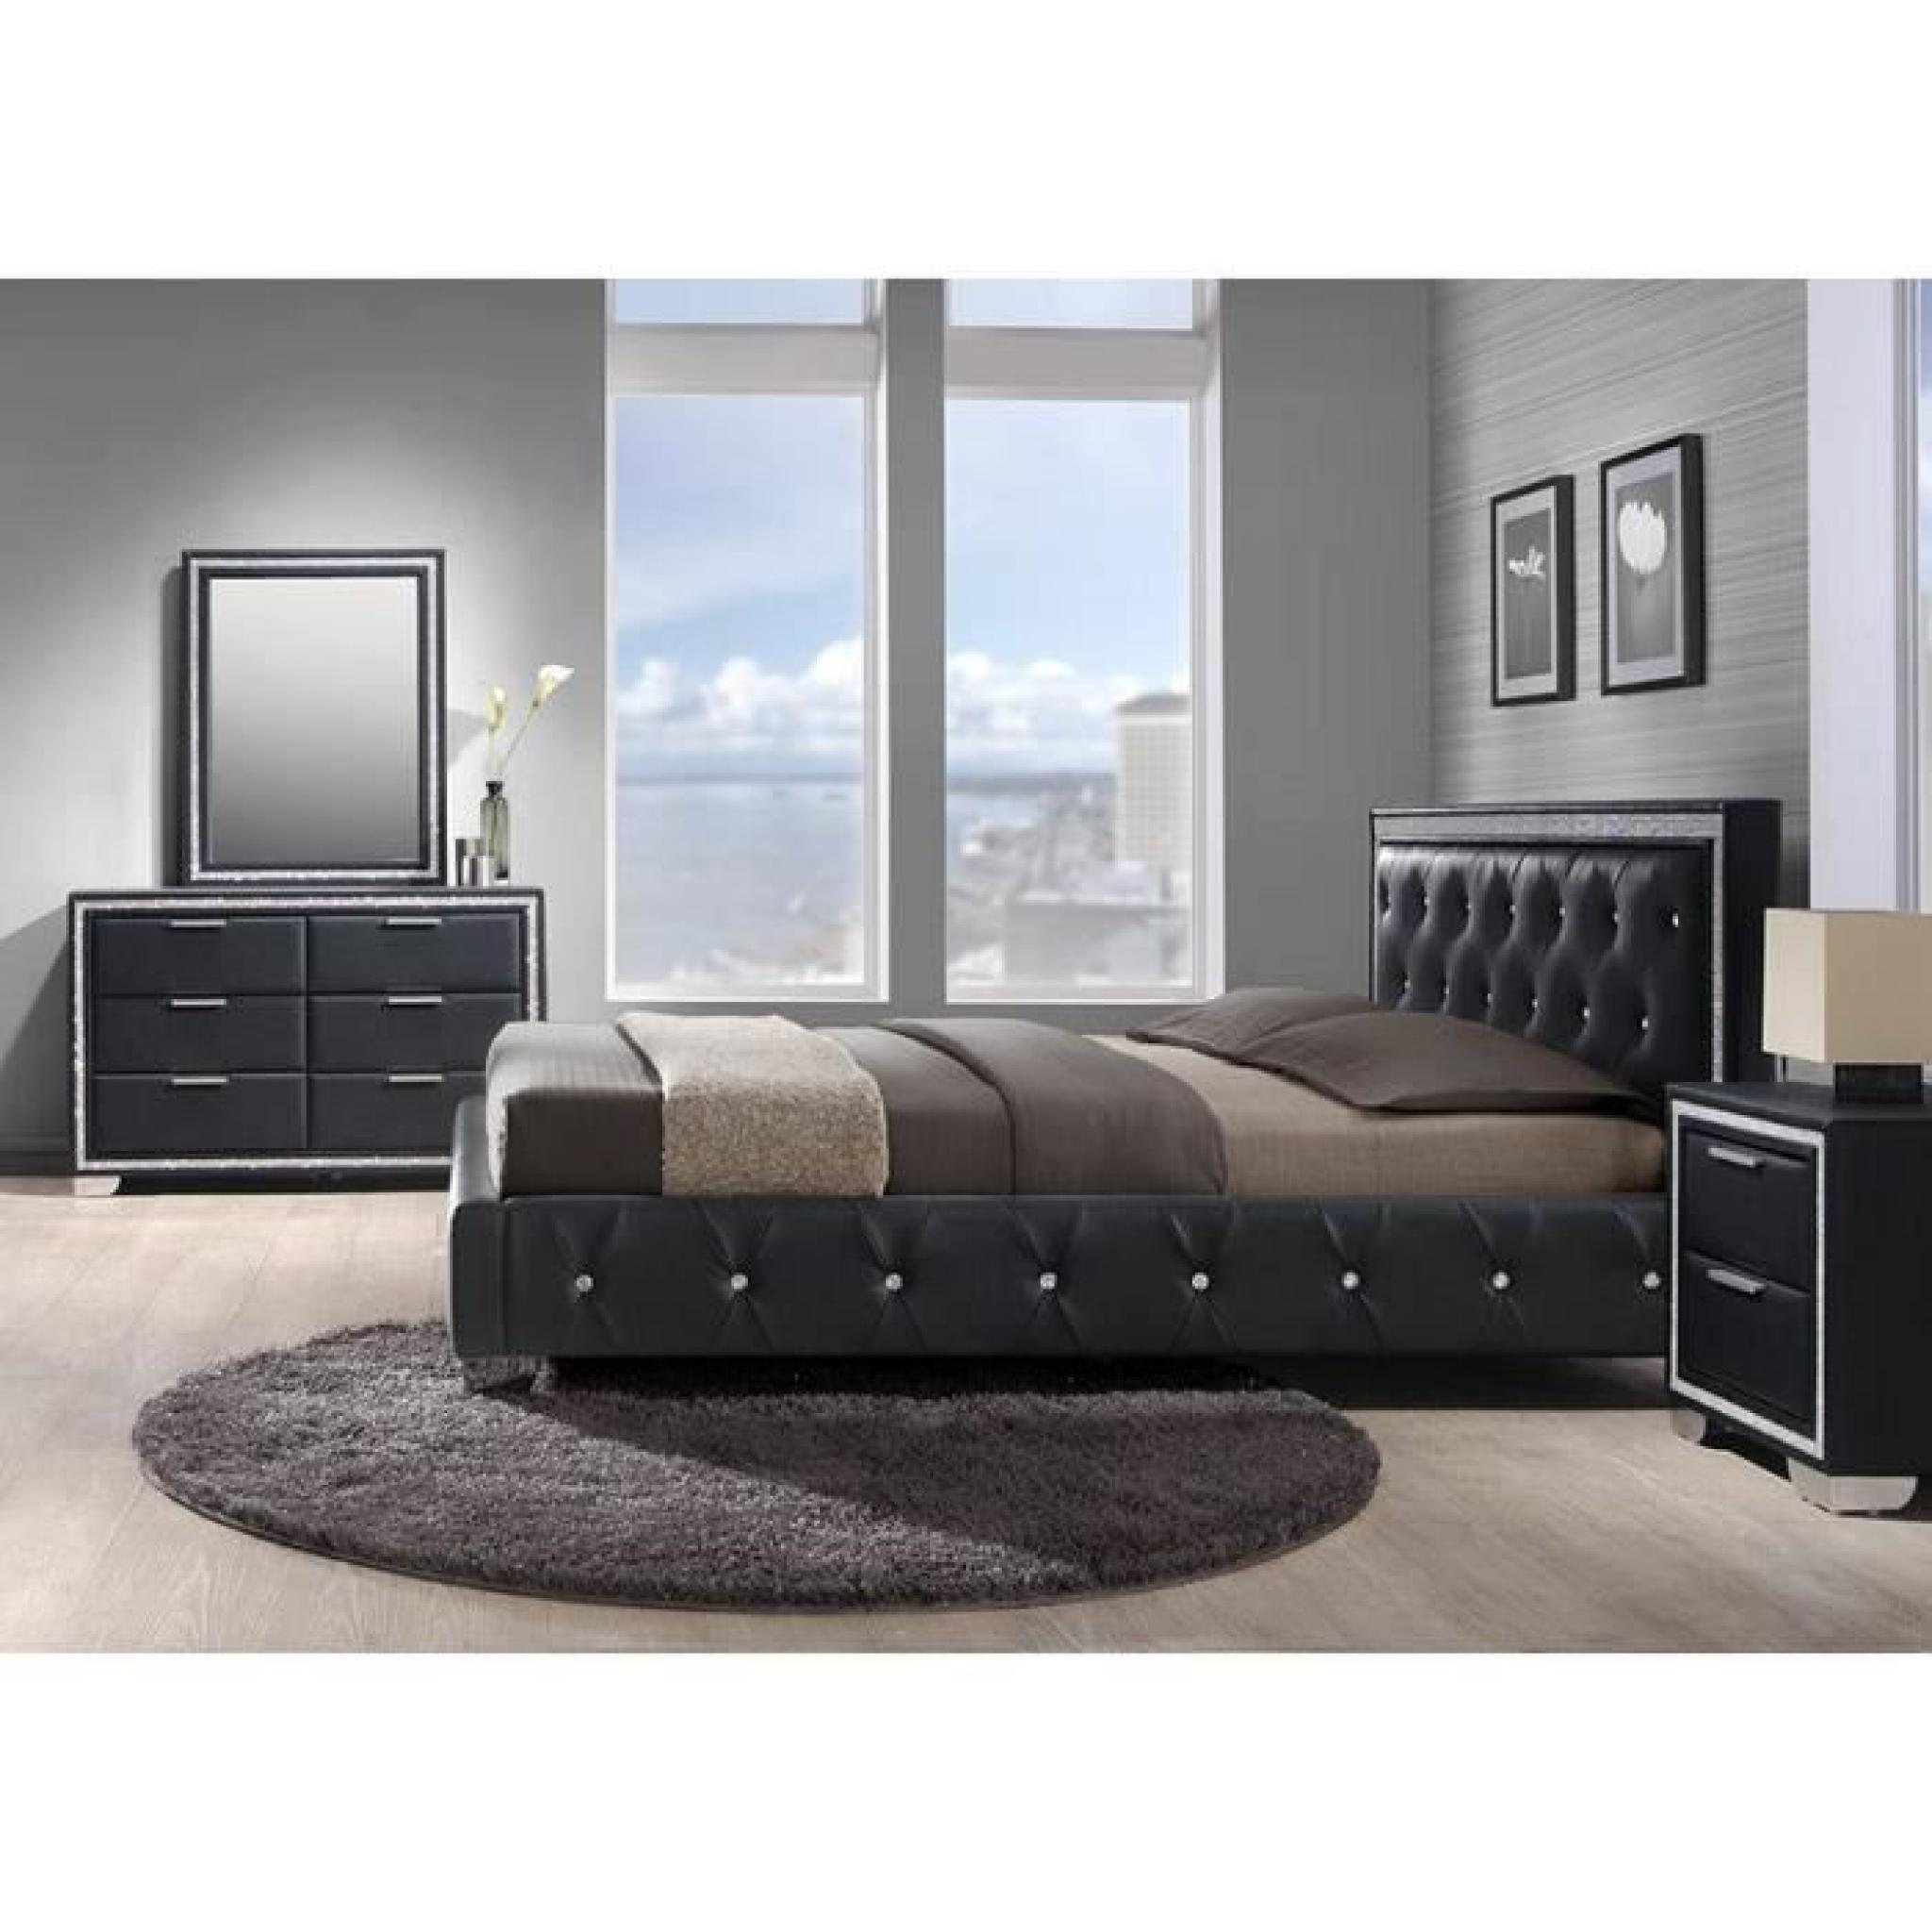 commode simili noir 6 tiroirs avec miroir cladis achat. Black Bedroom Furniture Sets. Home Design Ideas